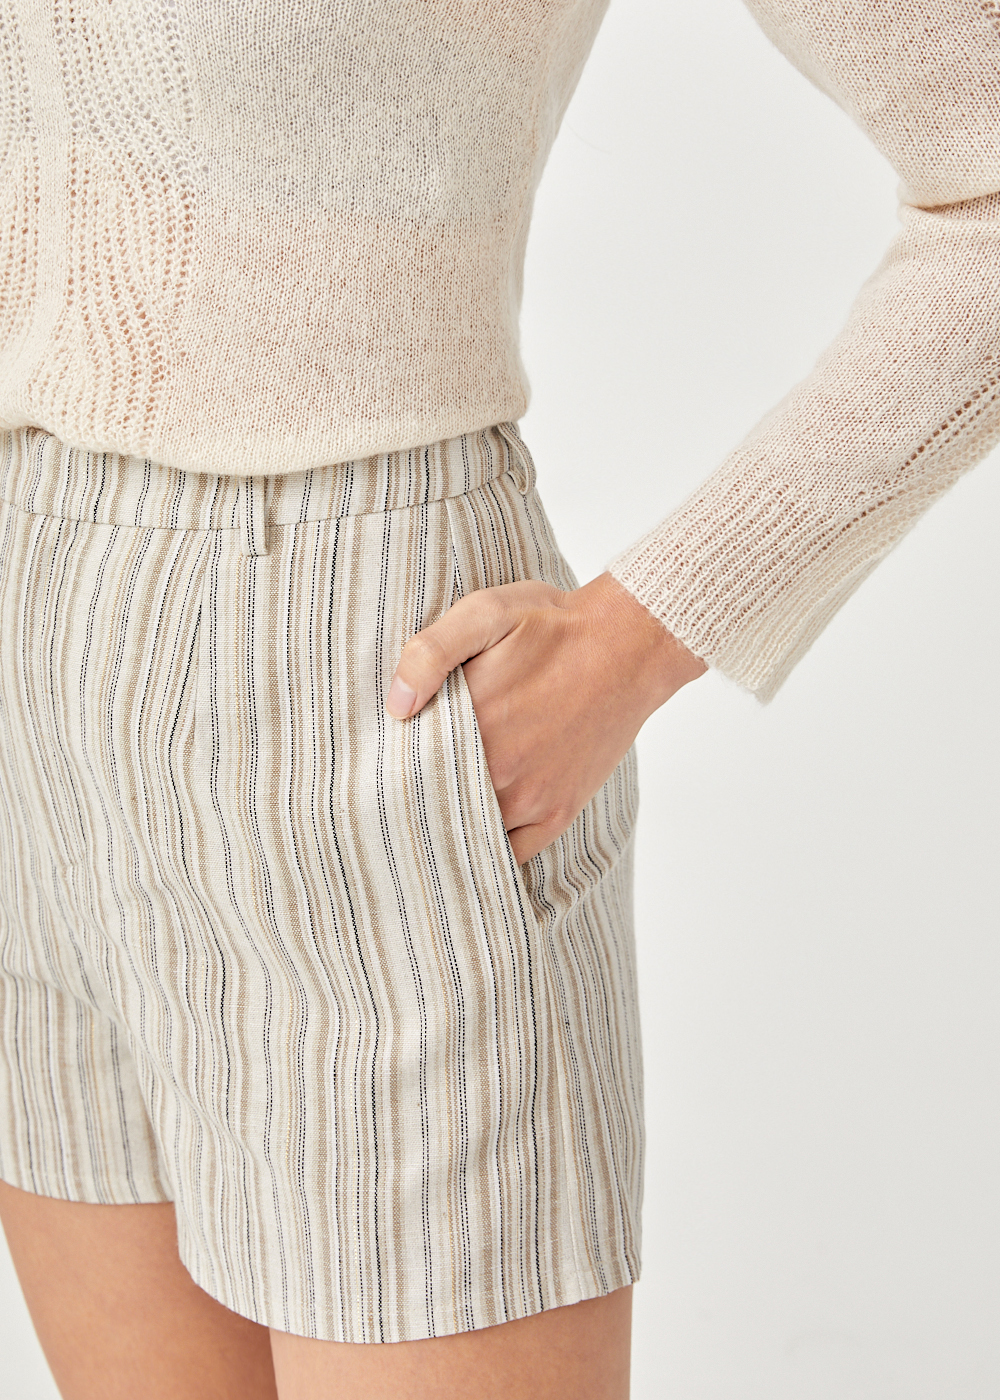 Nash Linen High Waist Shorts